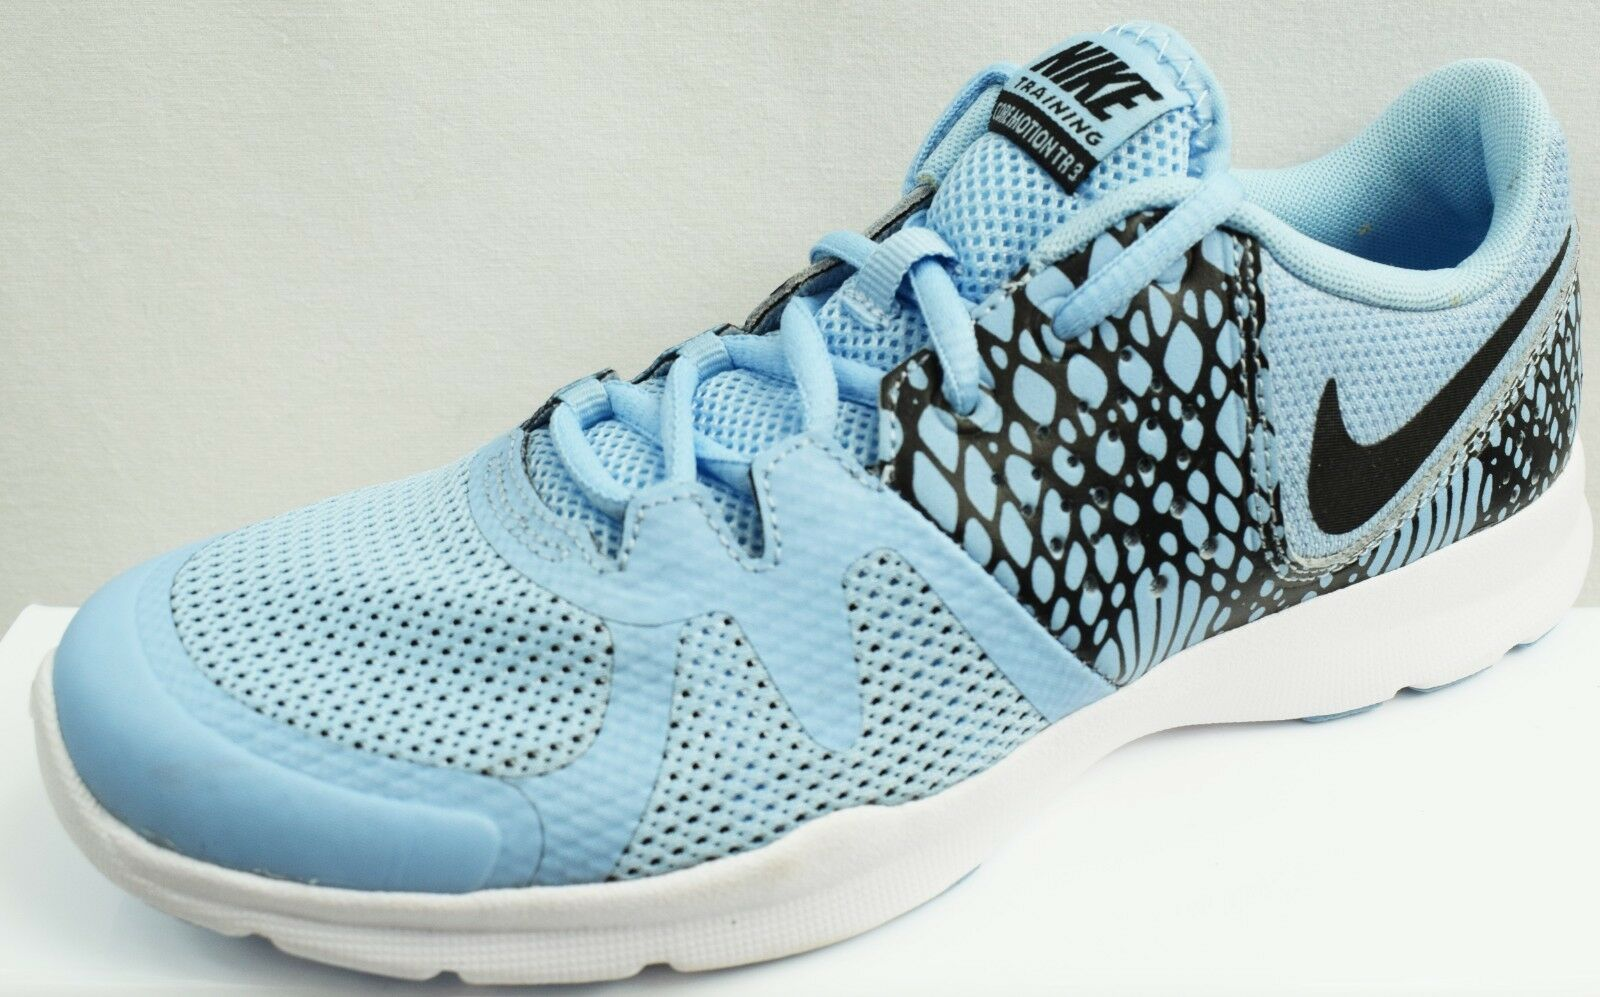 NIKE CORE MOTION LADIES FITNESS TRAINERS BRAND NEW SIZE UK 4.5 (DV5) - S